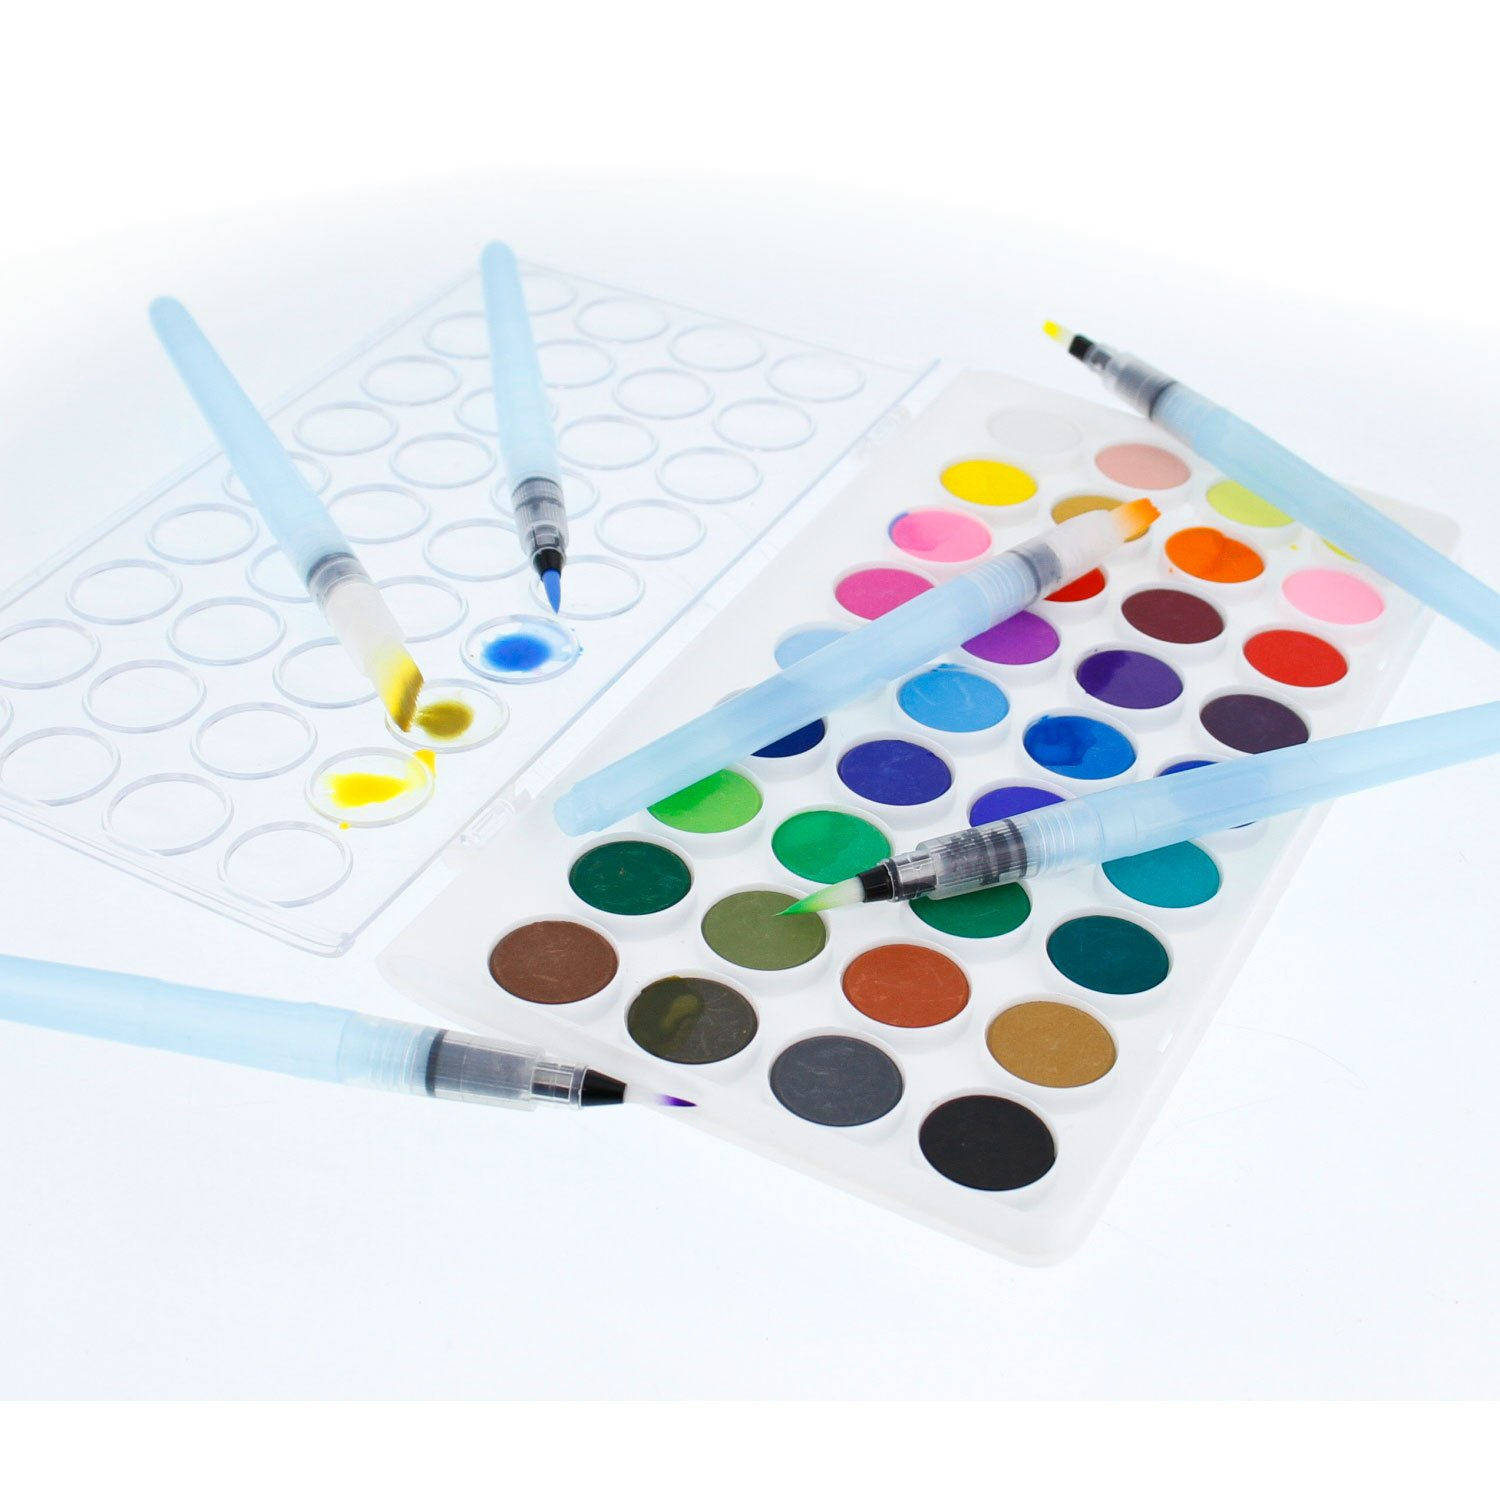 U.S. Art Supply 12-Piece Water Coloring Brush Pen Set of 12 (2 of each size - 01, 02, 03, 04, 07,10) - Refillable, Watercolor, Calligraphy, Painting by US Art Supply (Image #4)